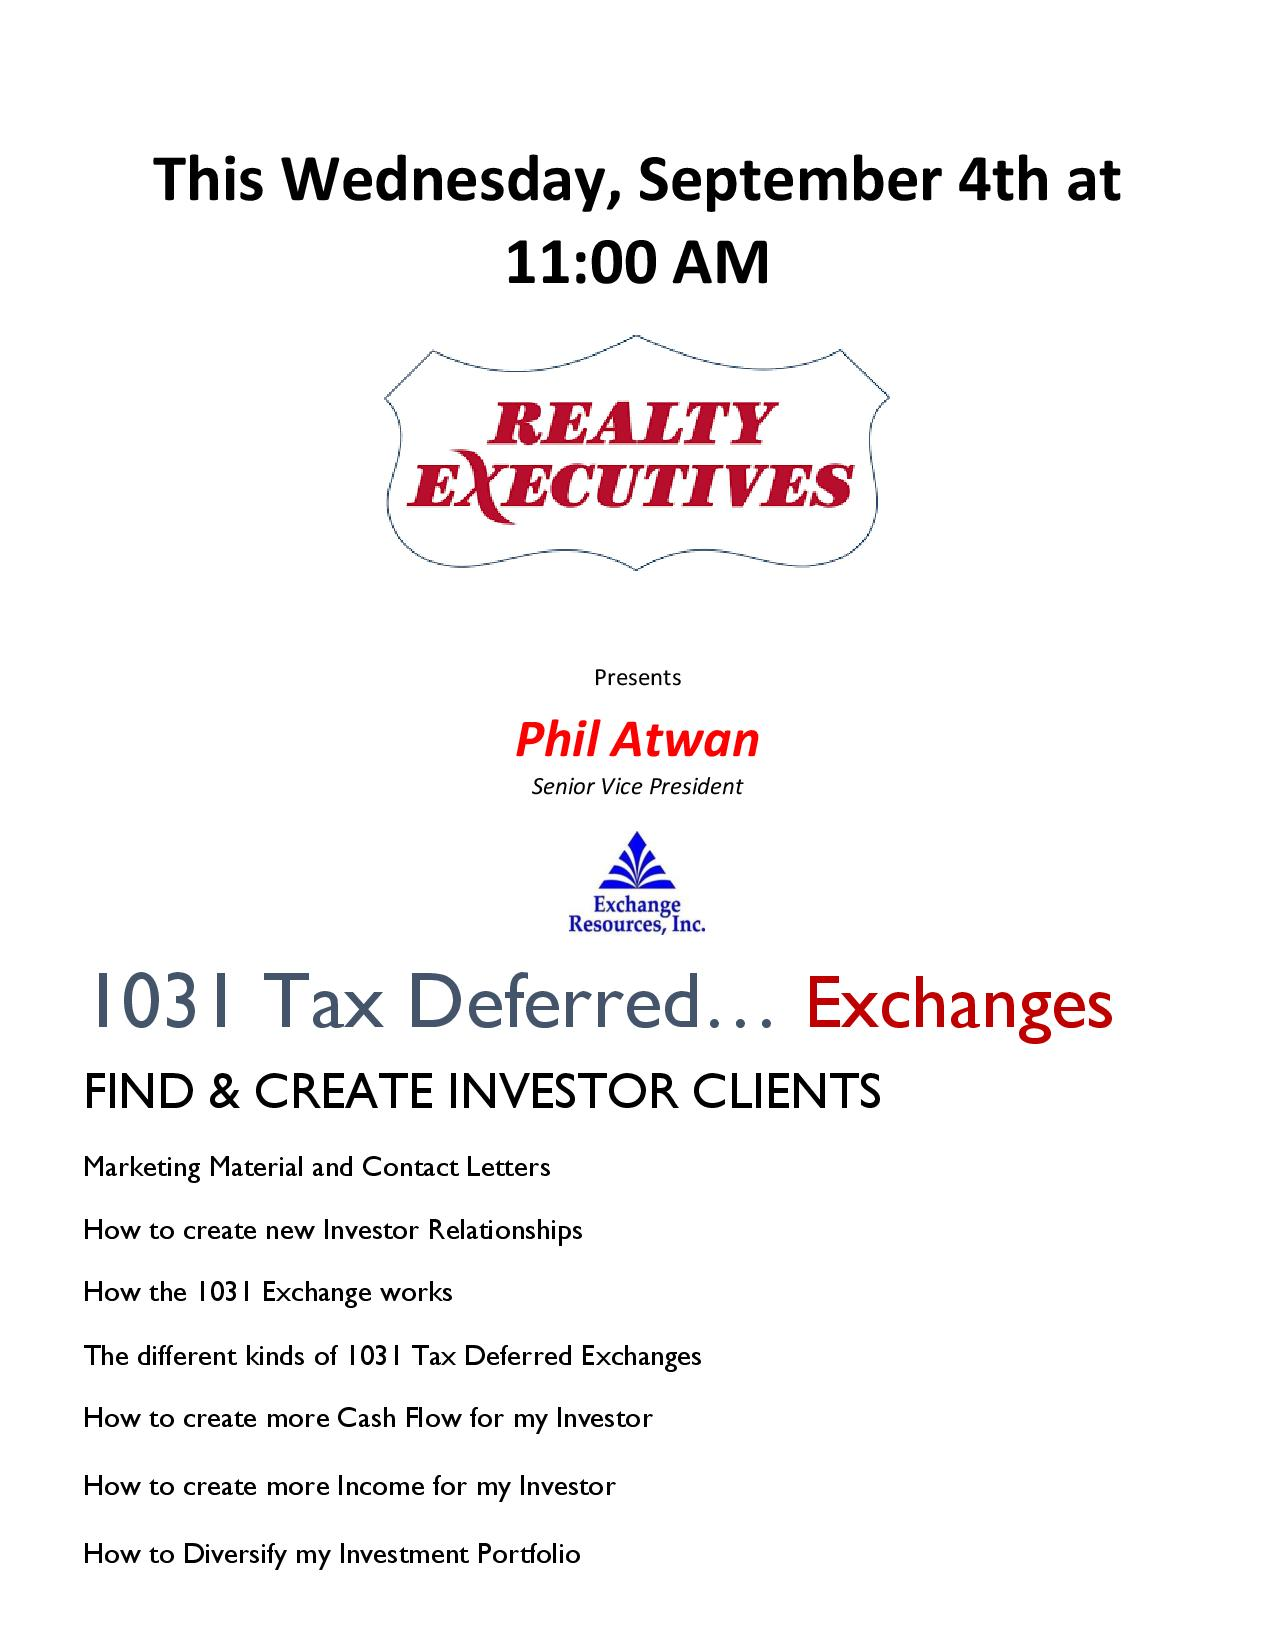 Come learn about 1031 Deferred Tax Exchanges. How to create wealth